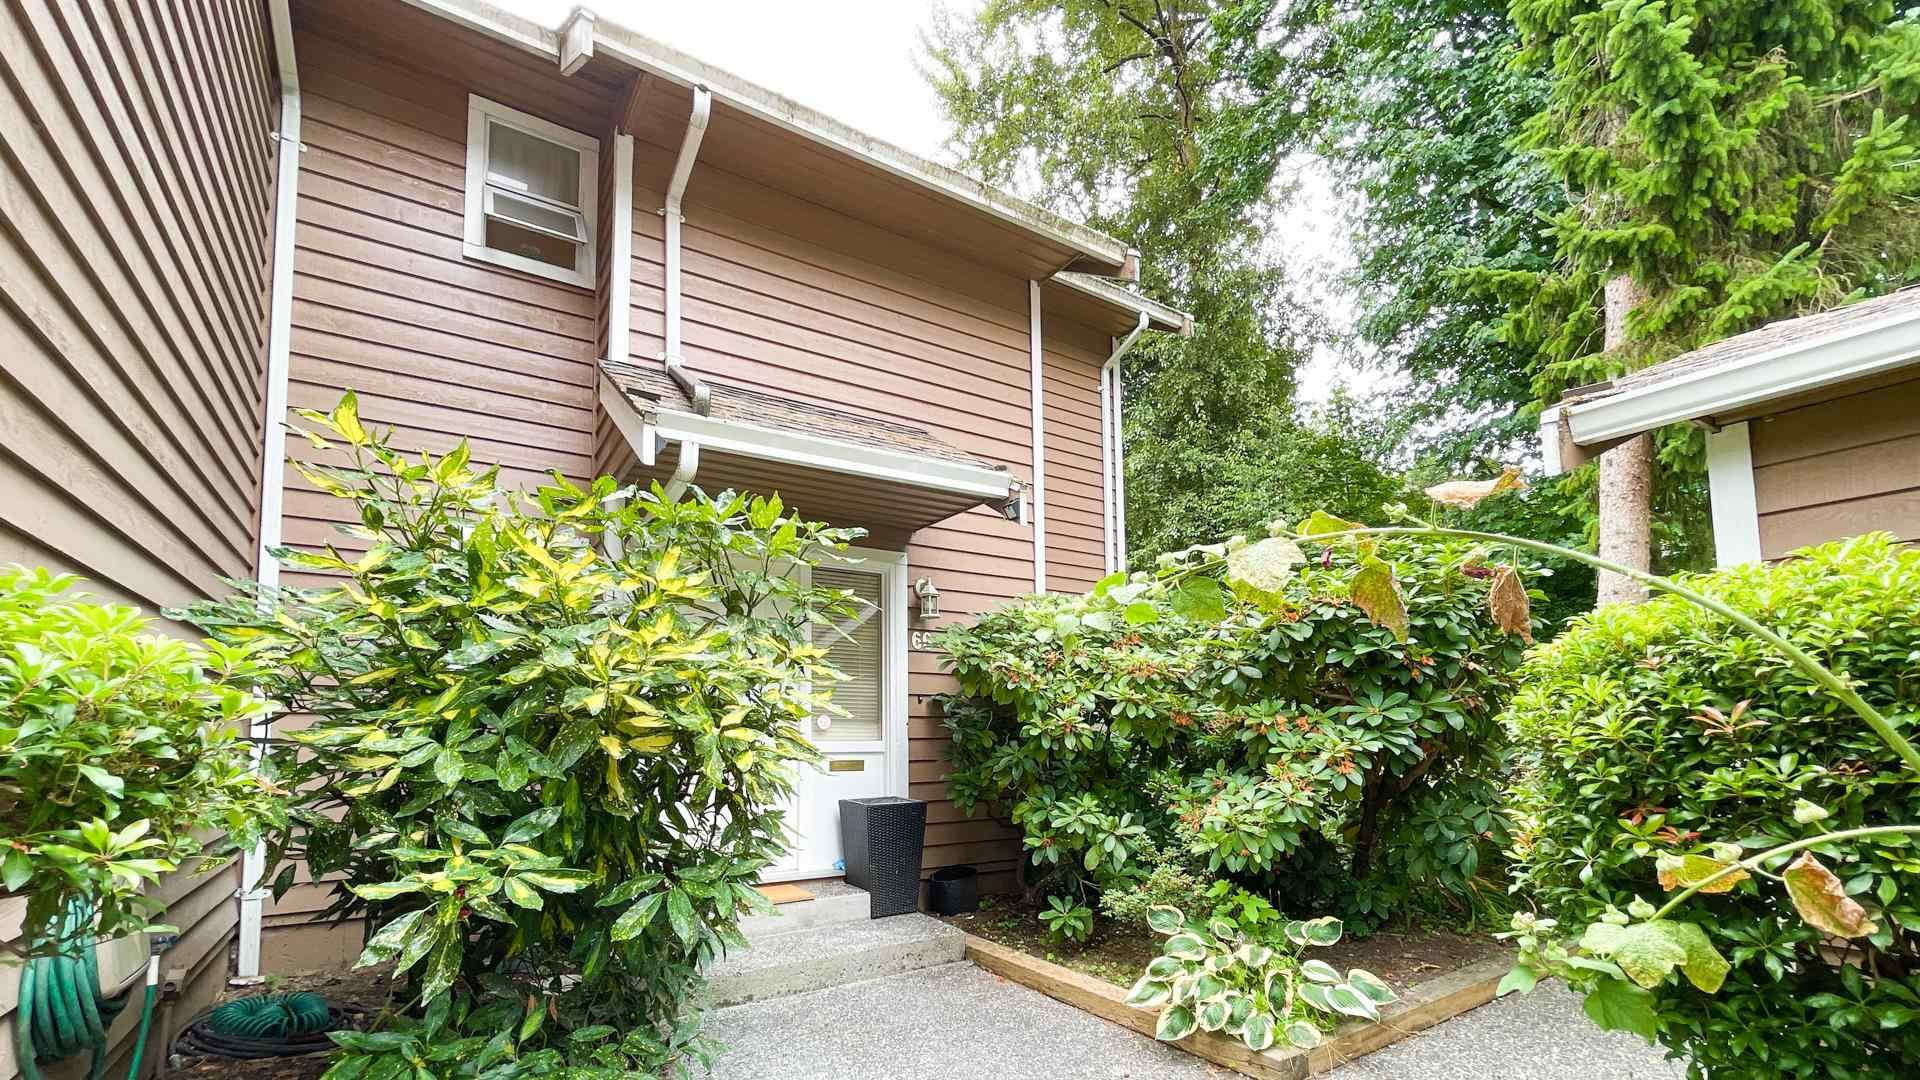 Photo 28: Photos: 66 9000 ASH GROVE CRESCENT in Burnaby: Forest Hills BN Townhouse for sale (Burnaby North)  : MLS®# R2603744